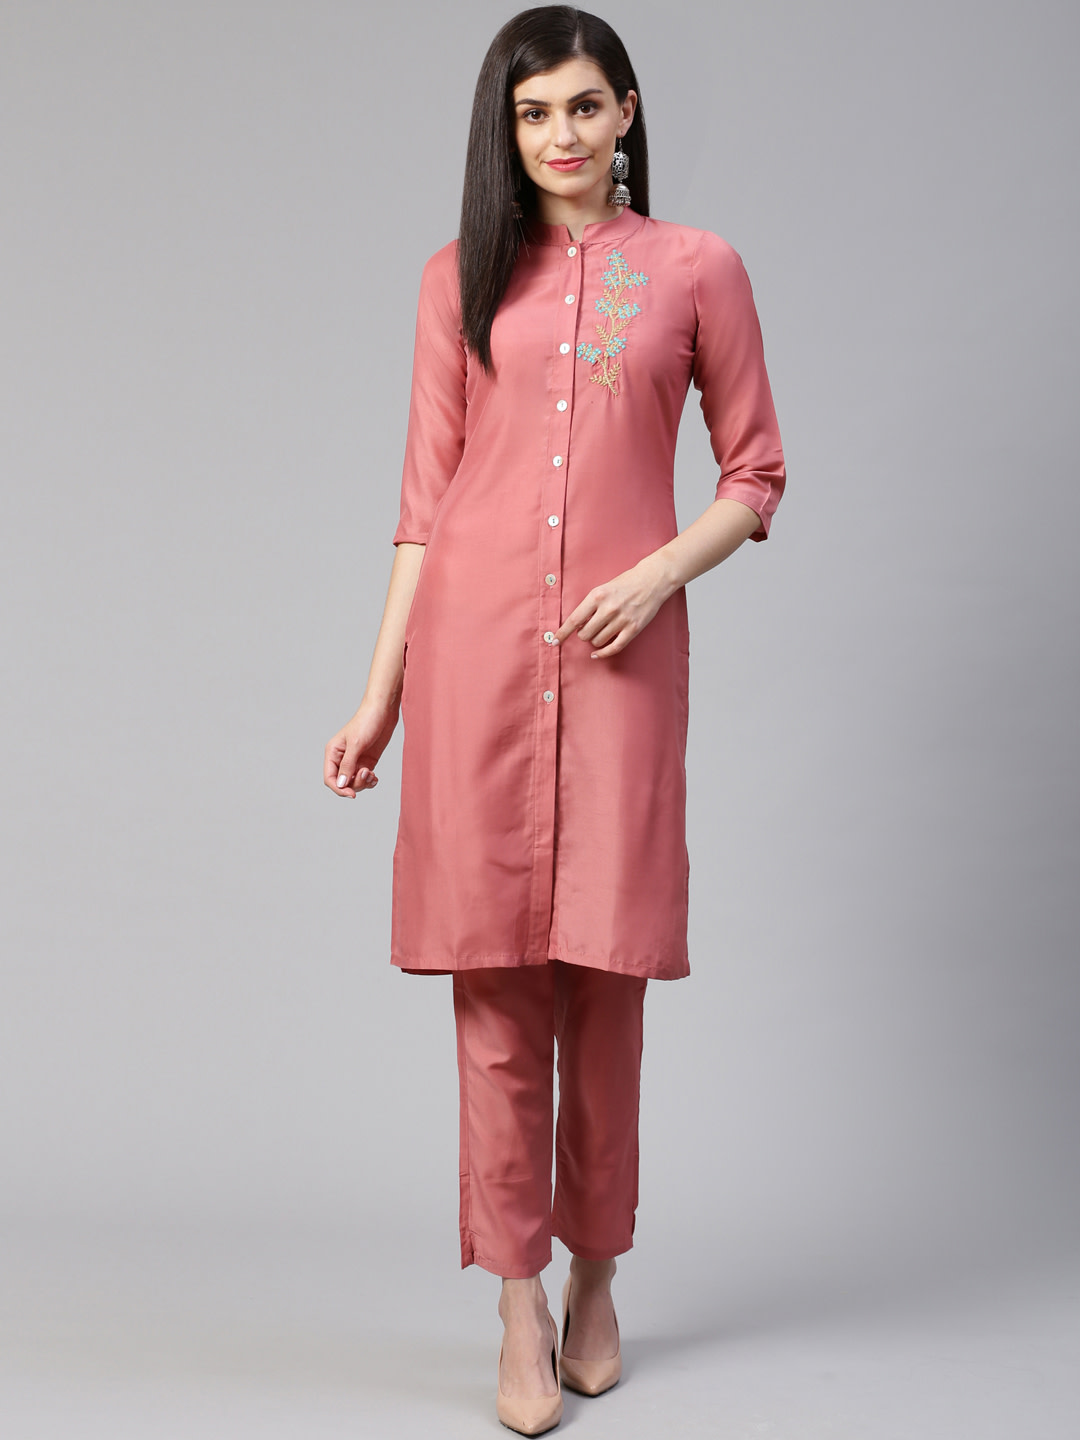 Jompers | Jompers® Women Pink Cotton Silk Embroidered Kurta with pants set